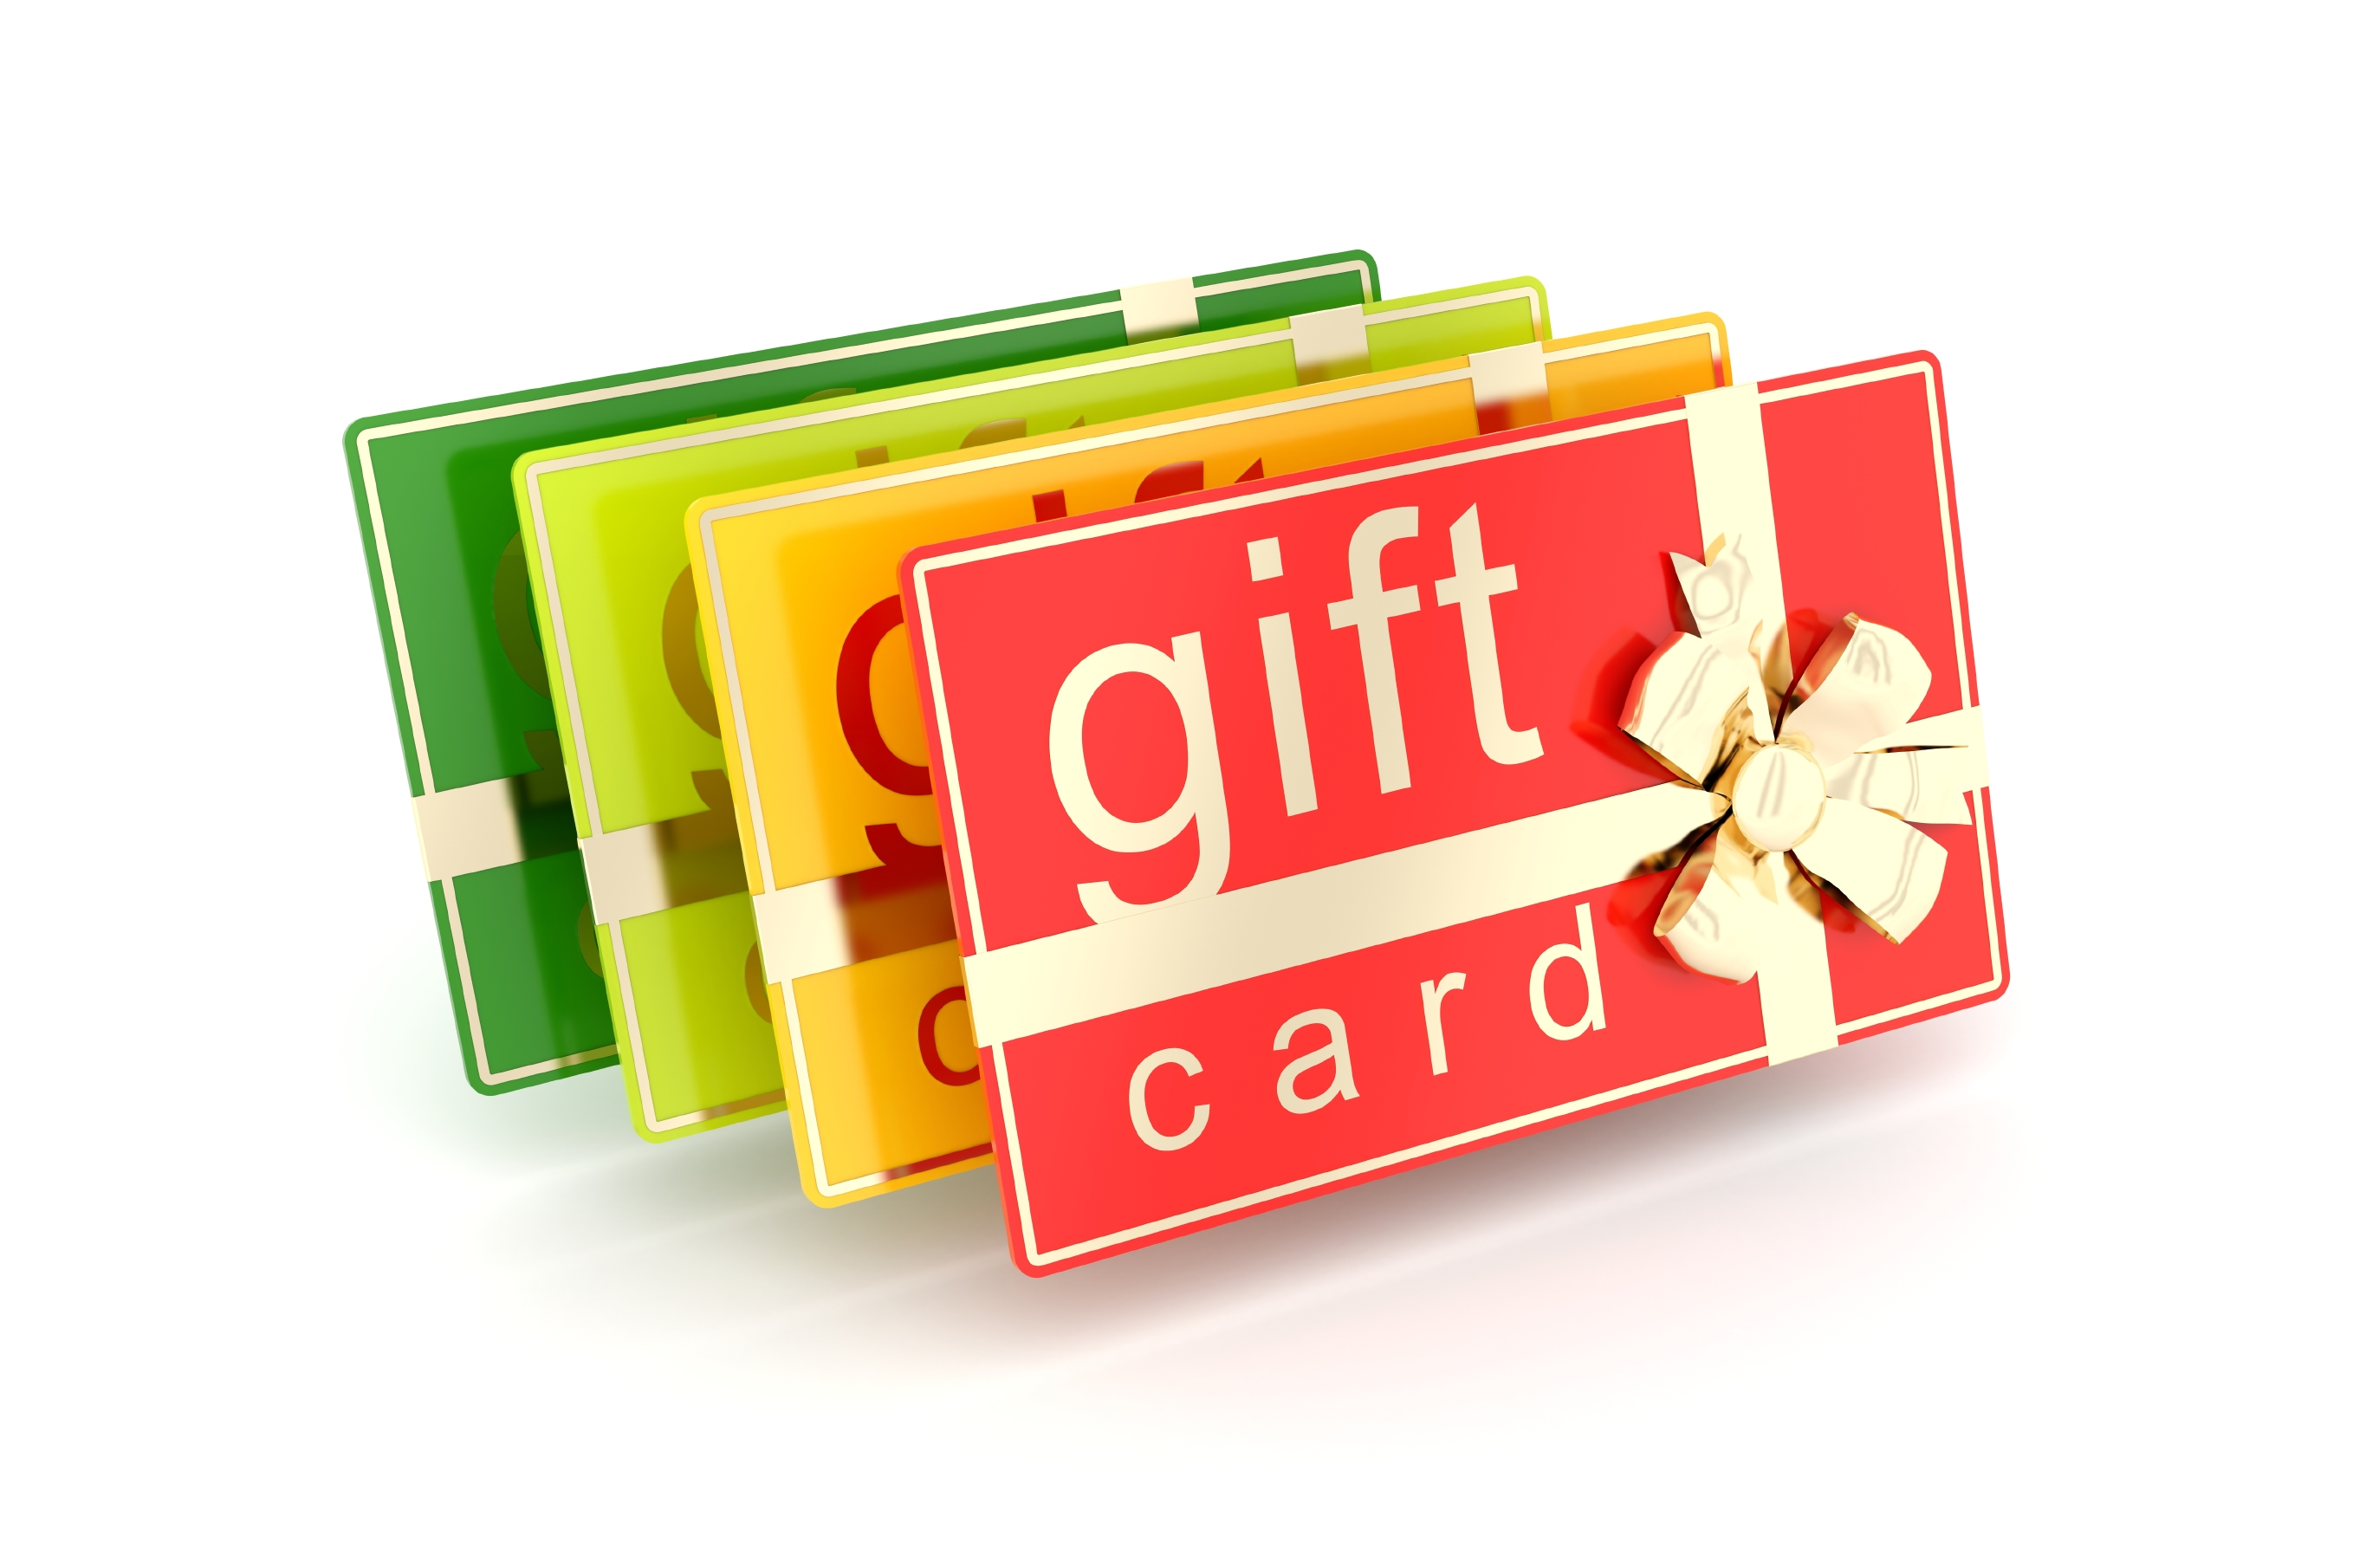 Send ciproprescription.ga Gift Cards by email, print-at-home, or mail with free shipping. Shop hundreds of gift cards from Starbucks, Nordstrom, GameStop, Whole Foods, Sephora, and more.